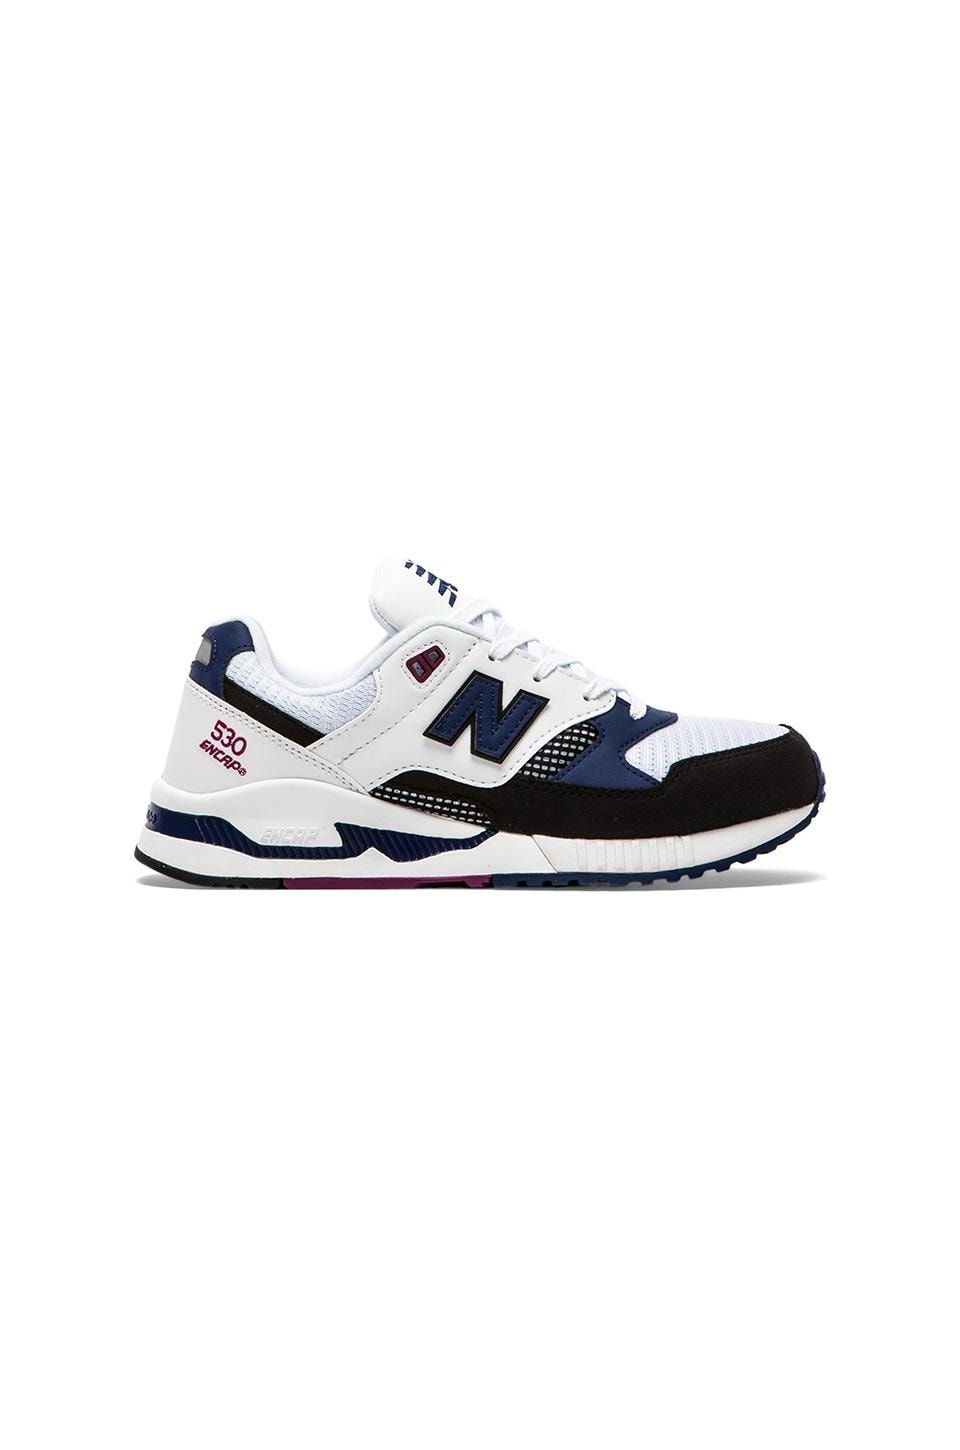 New Balance M530 in White/Black